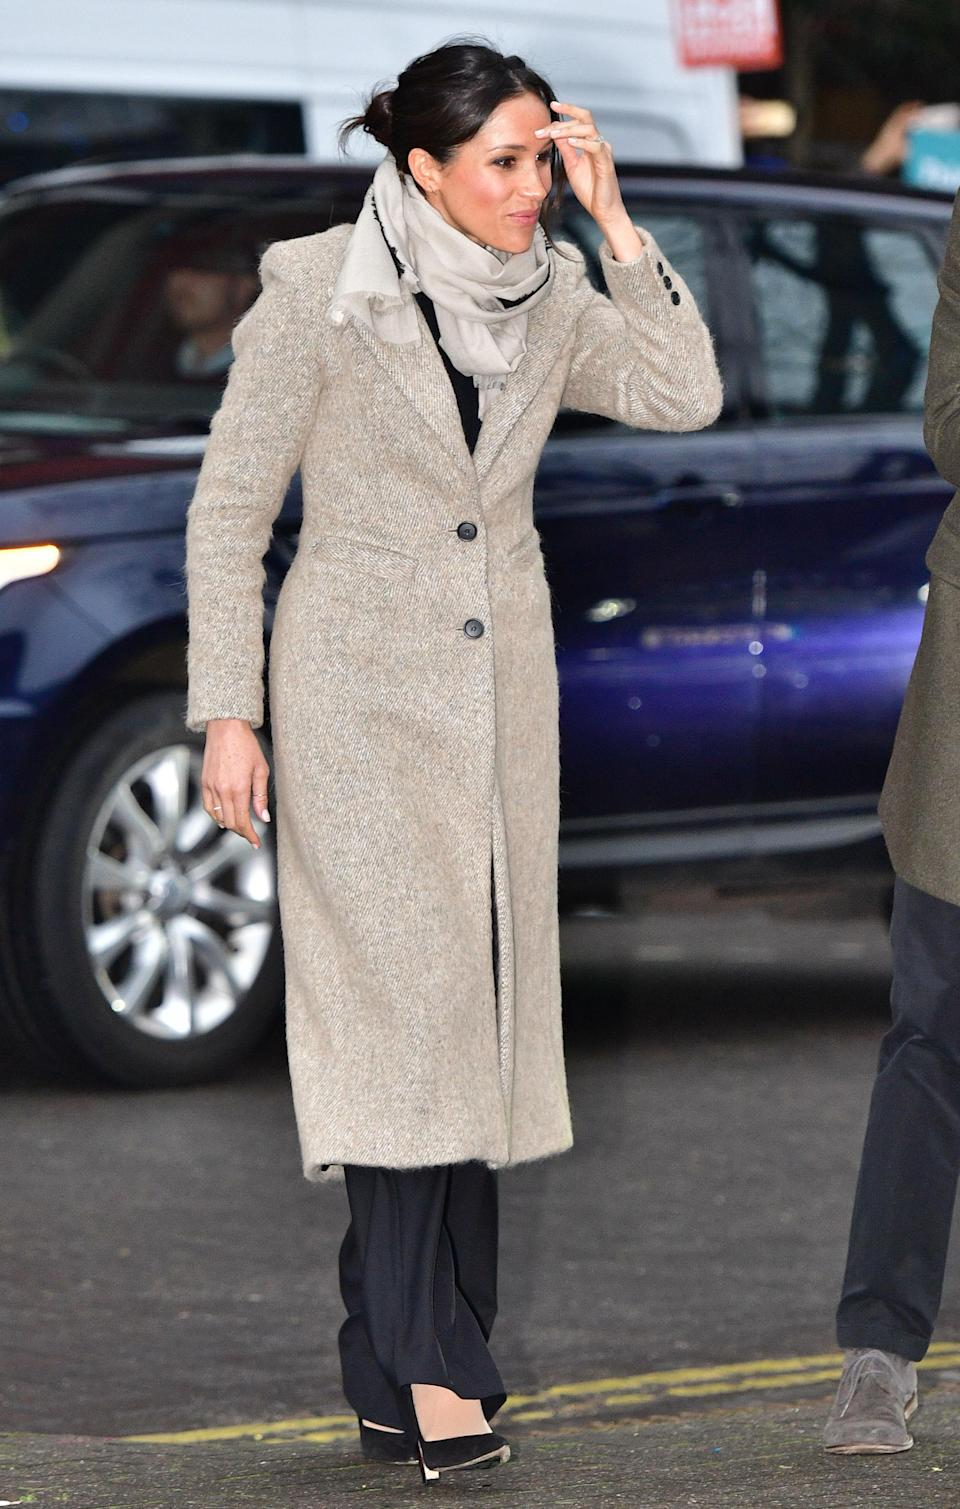 "<p>On 9 January 2018, Meghan Markle and Prince Harry visited a Brixton radio station to mark their second royal engagement together. For the momentous occasion, Markle recycled her go-to Smythe coat and teamed the look with Burberry trousers, a Jigsaw scarf and Marks and Spencer's <a href=""http://www.marksandspencer.com/wool-blend-round-neck-bell-sleeve-jumper/p/p22511692?OmnitureRedirect=Wool+Blend+Round+Neck+Bell+Sleeve+Jumper+"" rel=""nofollow noopener"" target=""_blank"" data-ylk=""slk:knit"" class=""link rapid-noclick-resp"">knit</a>. <em>[Photo: Getty]</em> </p>"